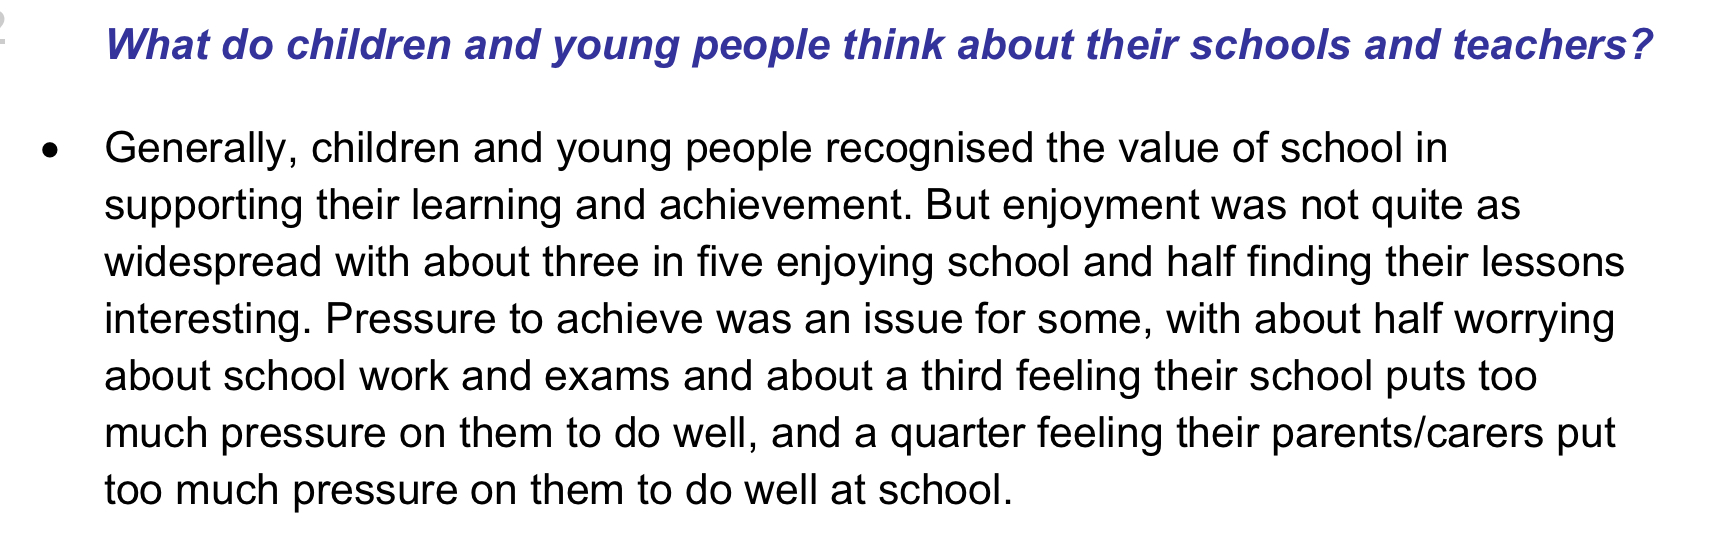 Source: Children's Commissioner (2011), Children and young people's views of education policy.